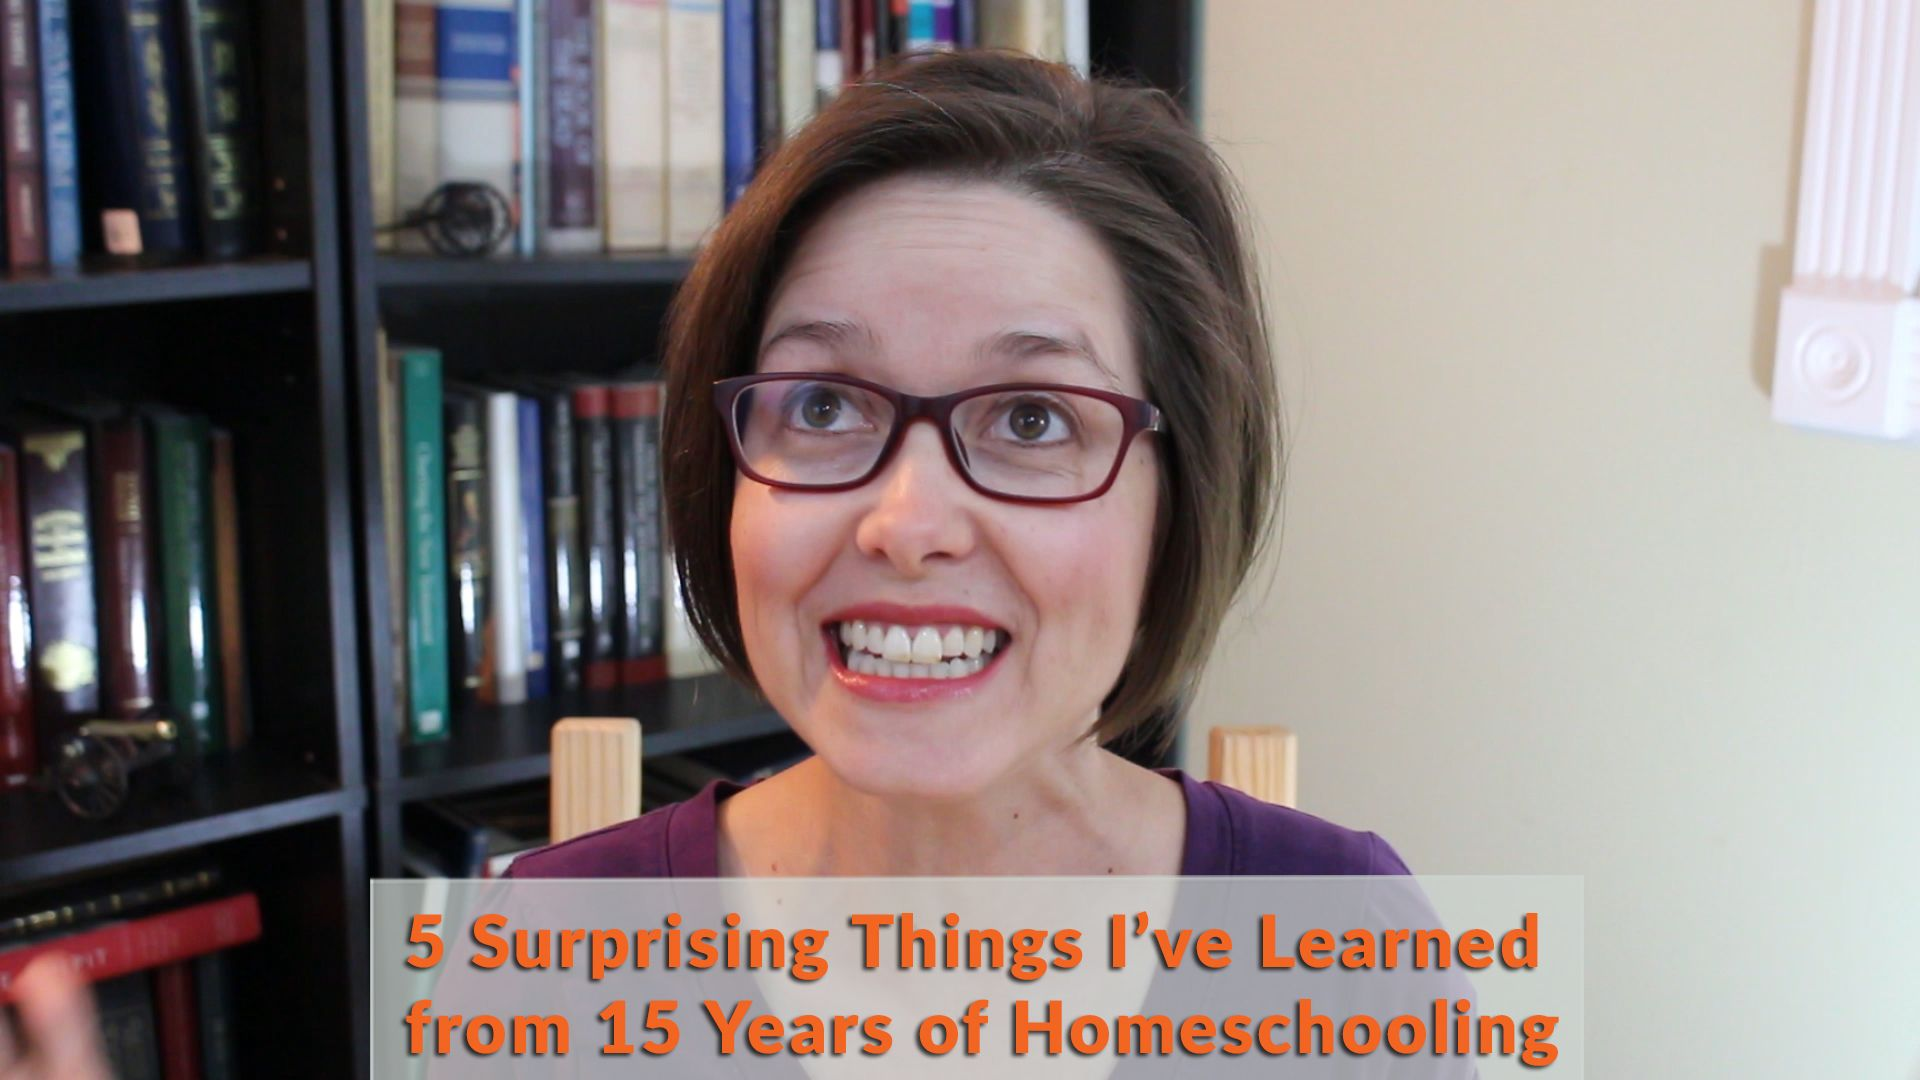 5 Things Learned from Homeschooling